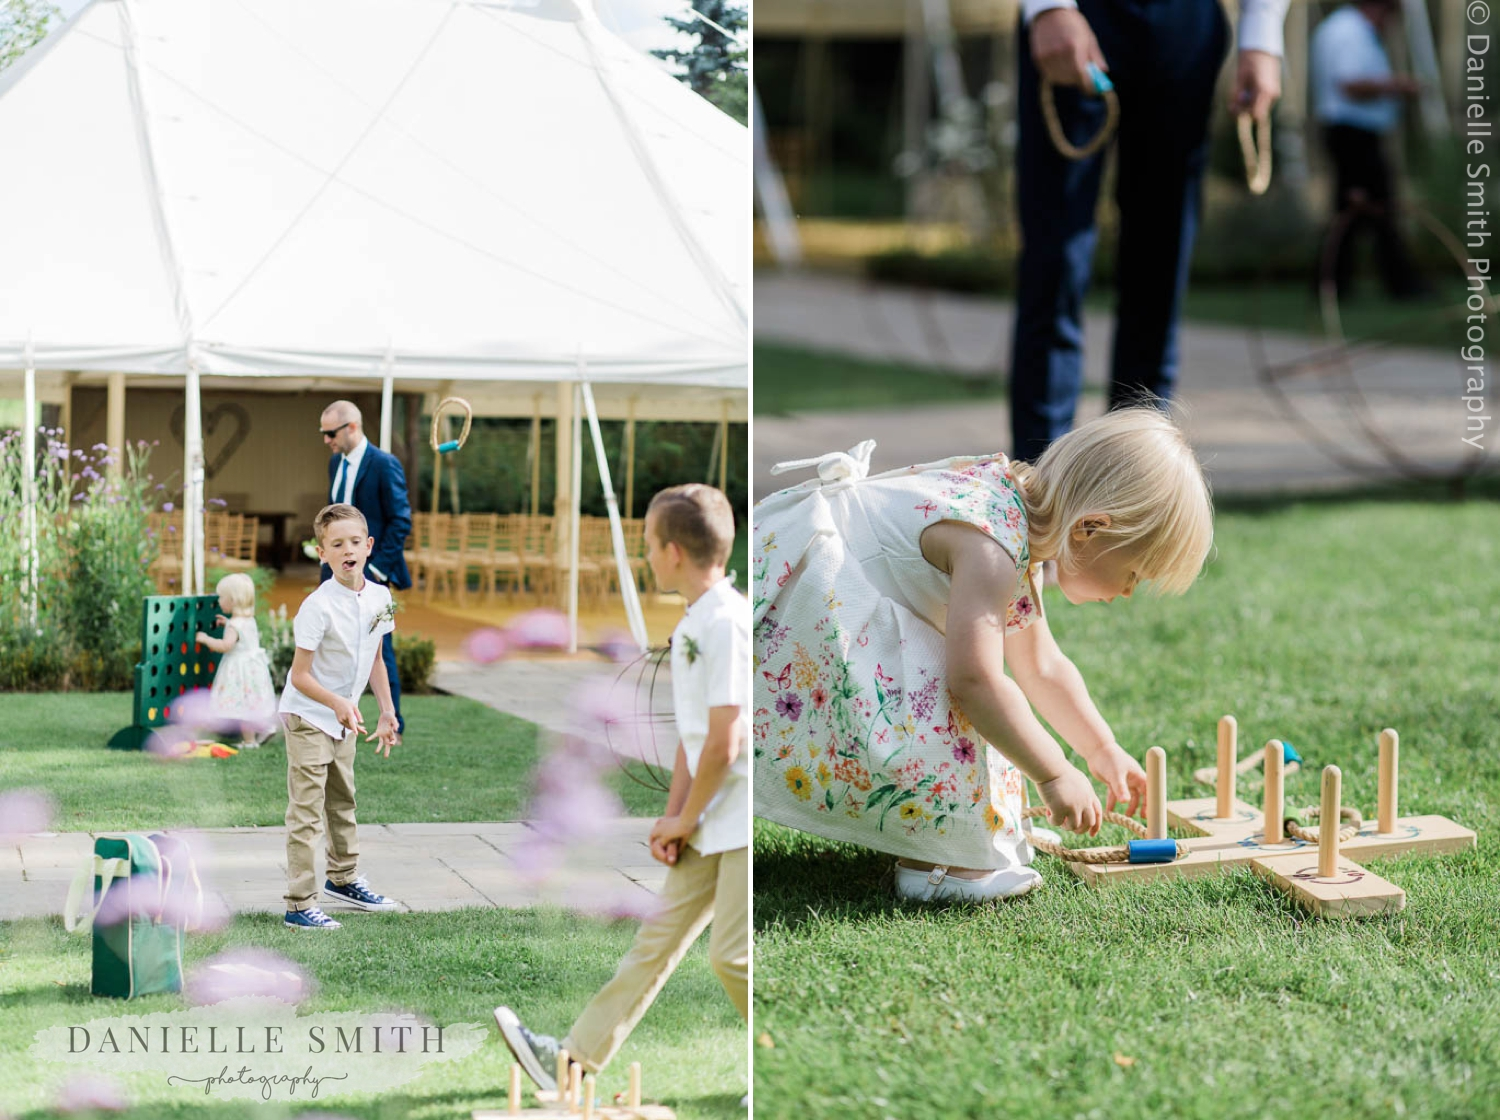 children playing garden games at outdoor wedding